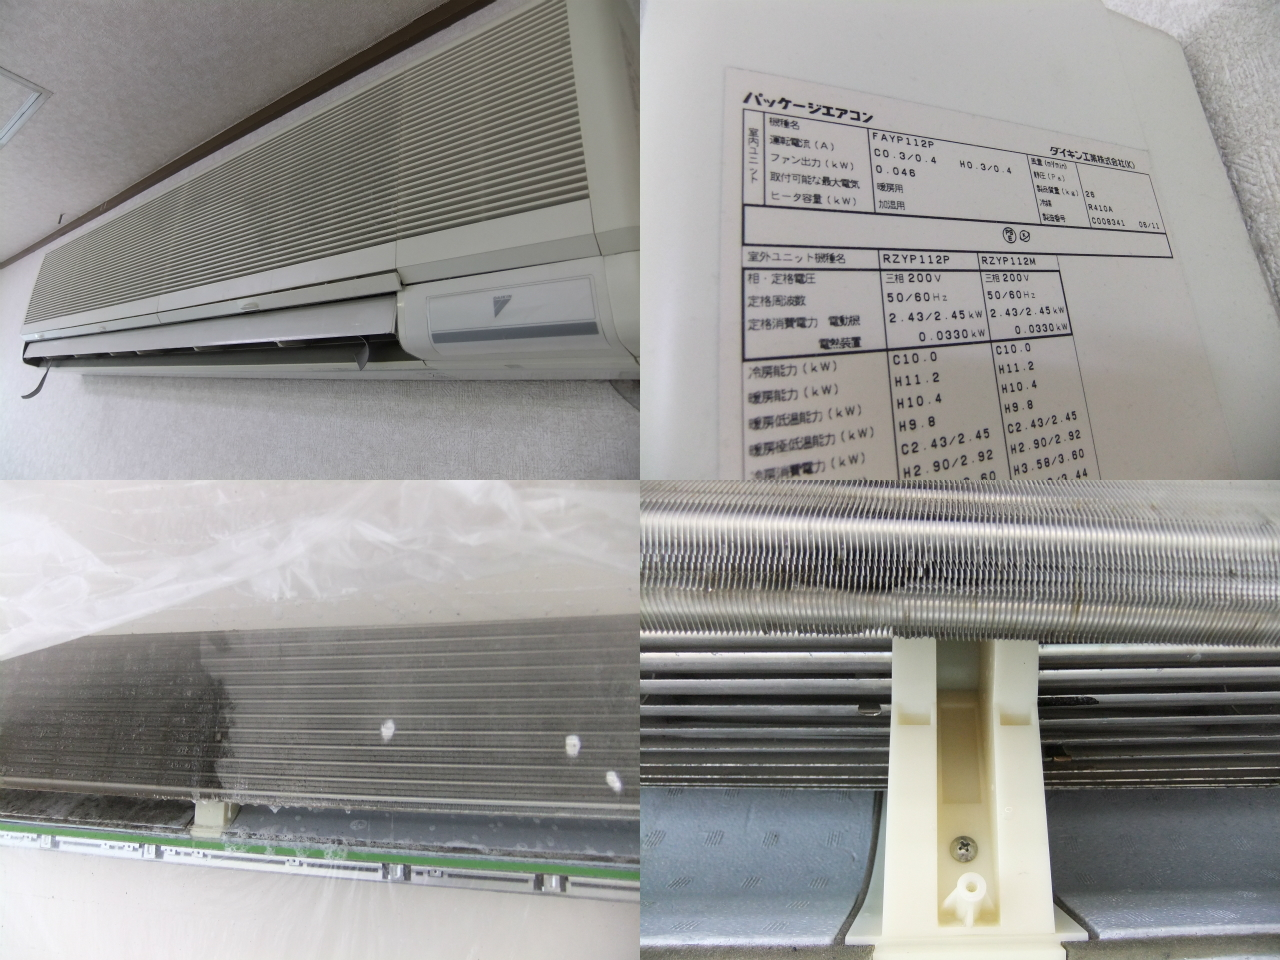 http://ajras.net/images/120123-aircon1.jpg